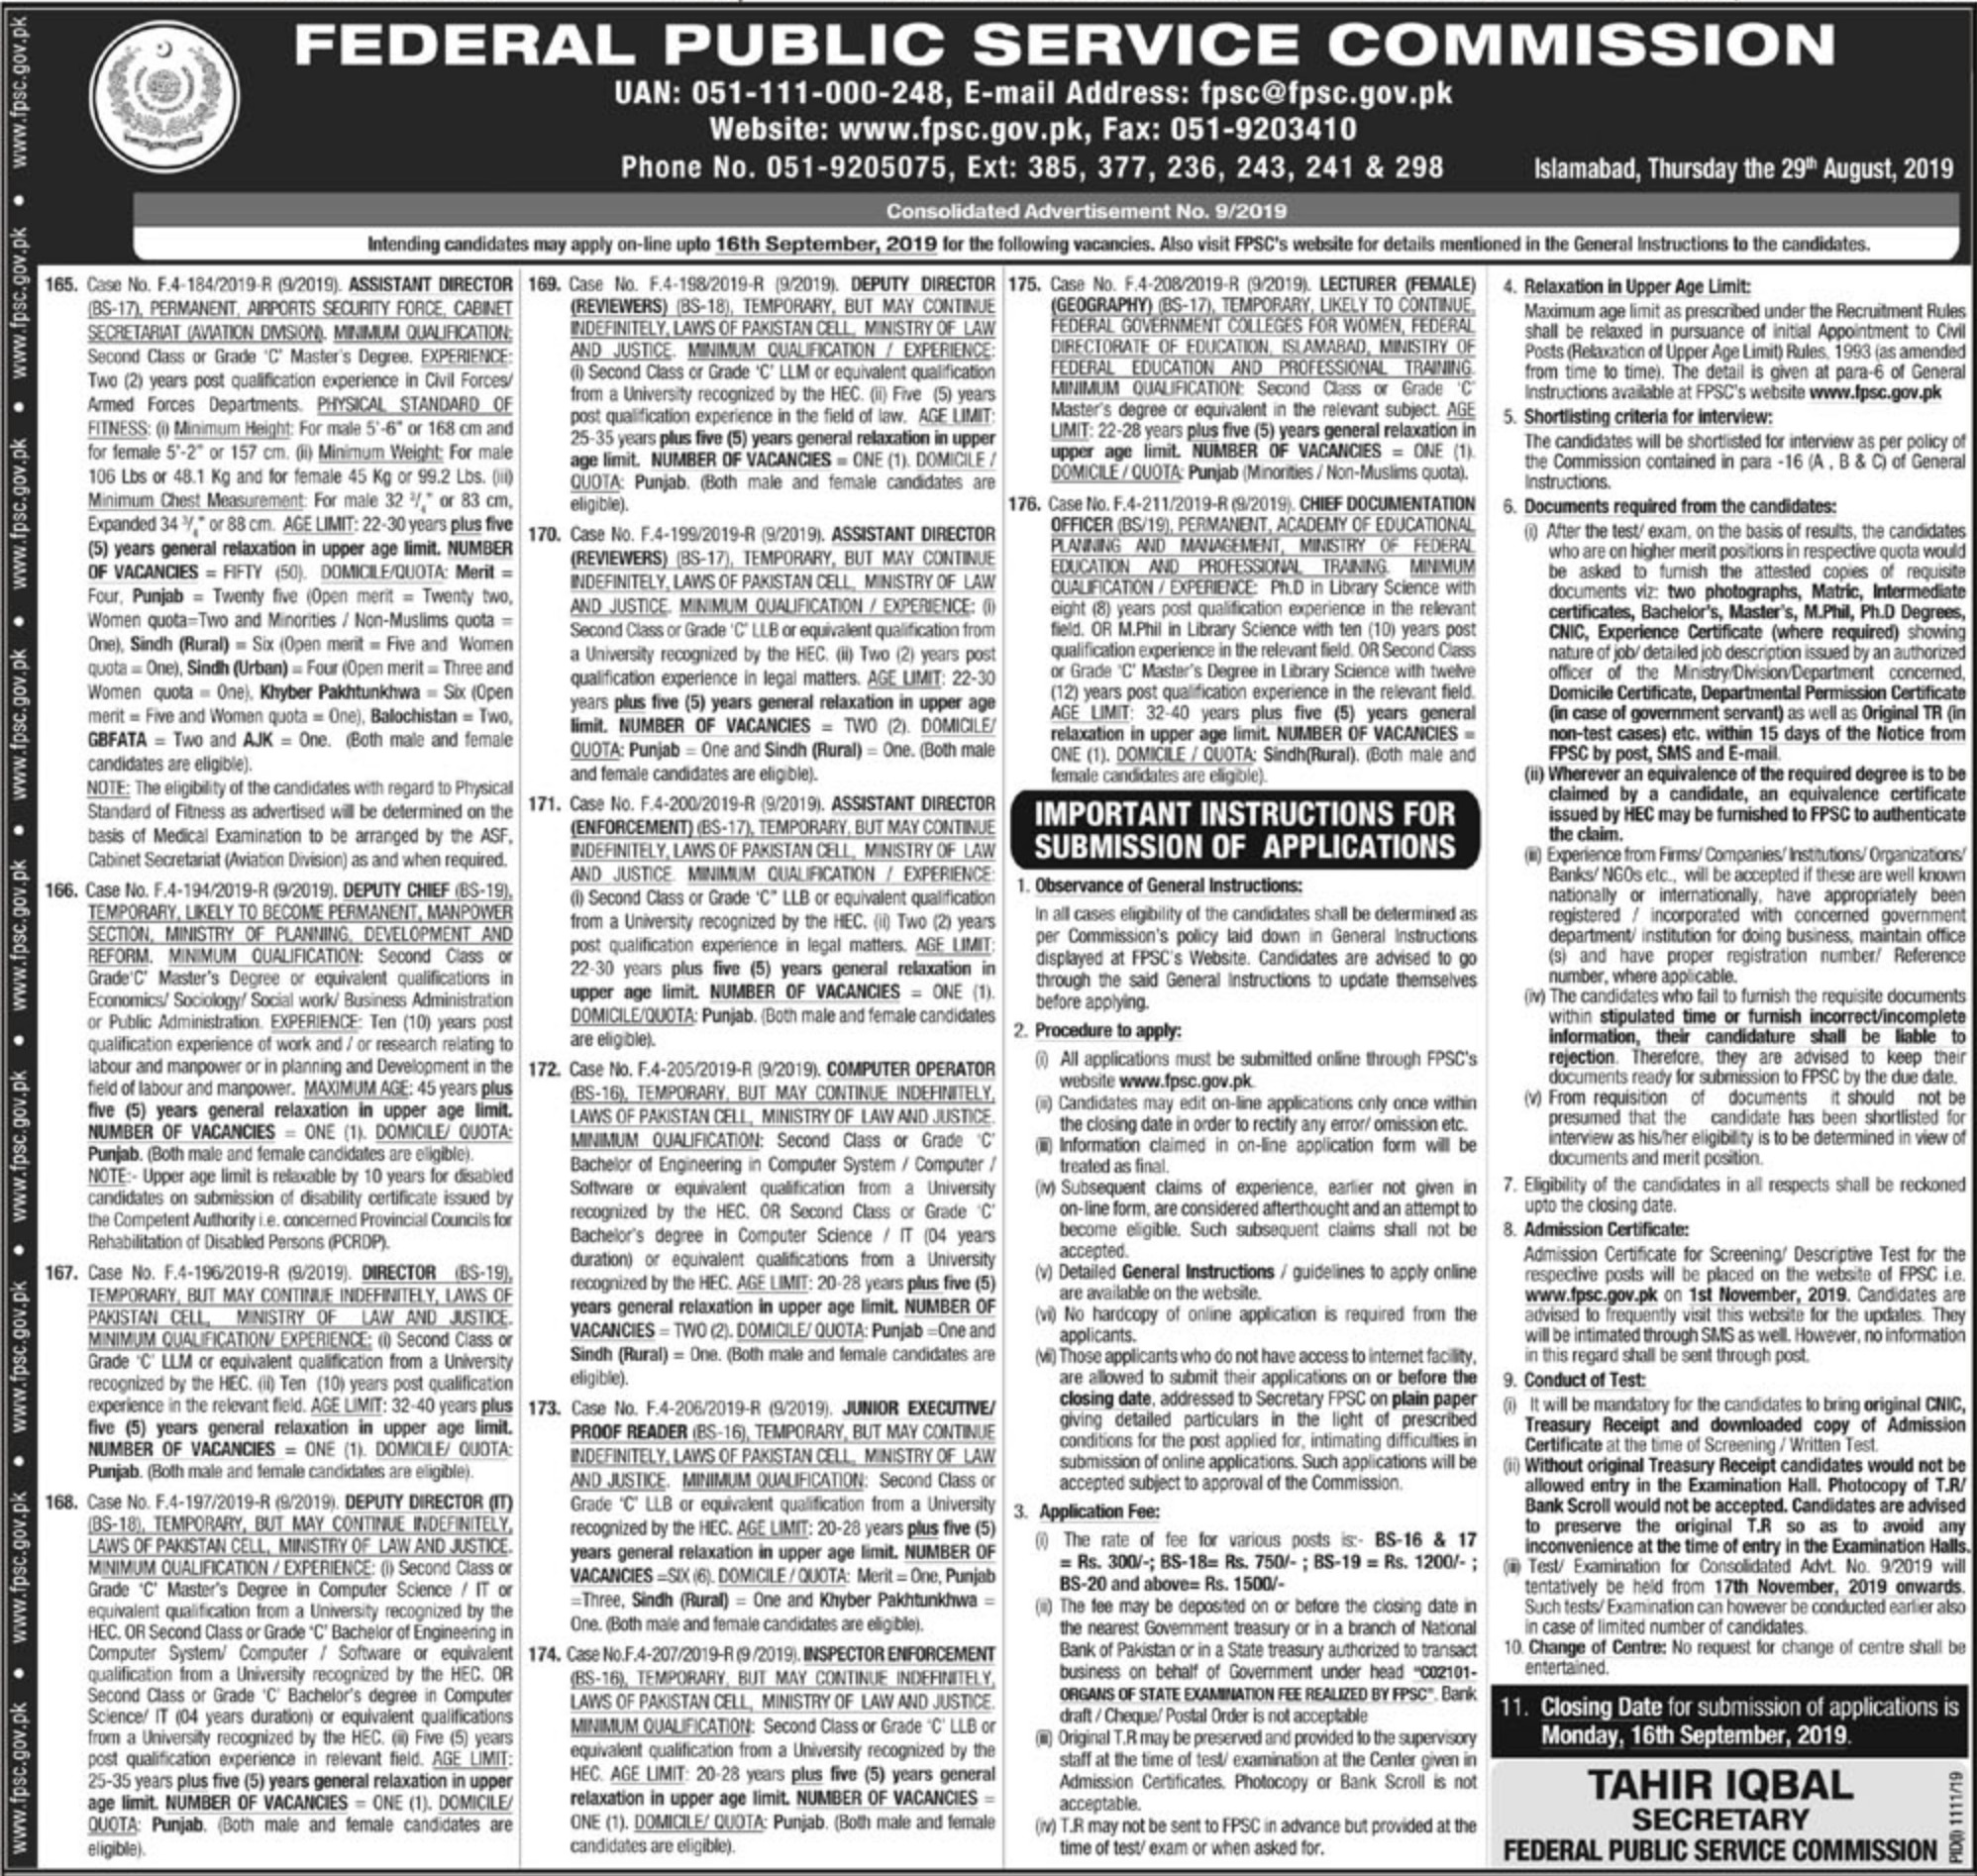 FPSC Jobs 2019 Apply Online Federal Public Service Commission